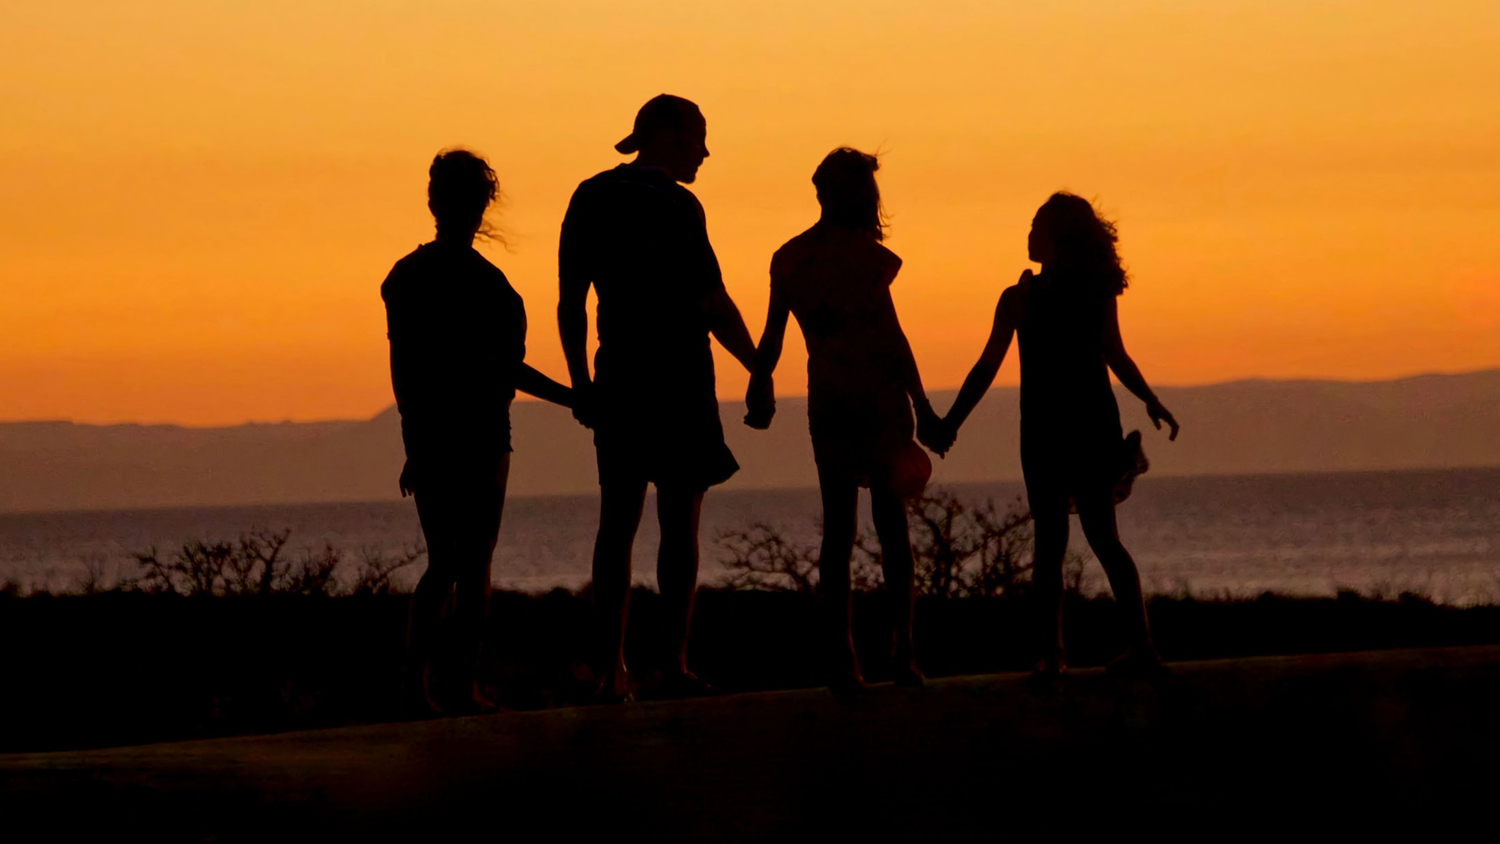 A family holding hands, silhouetted against the setting sun.